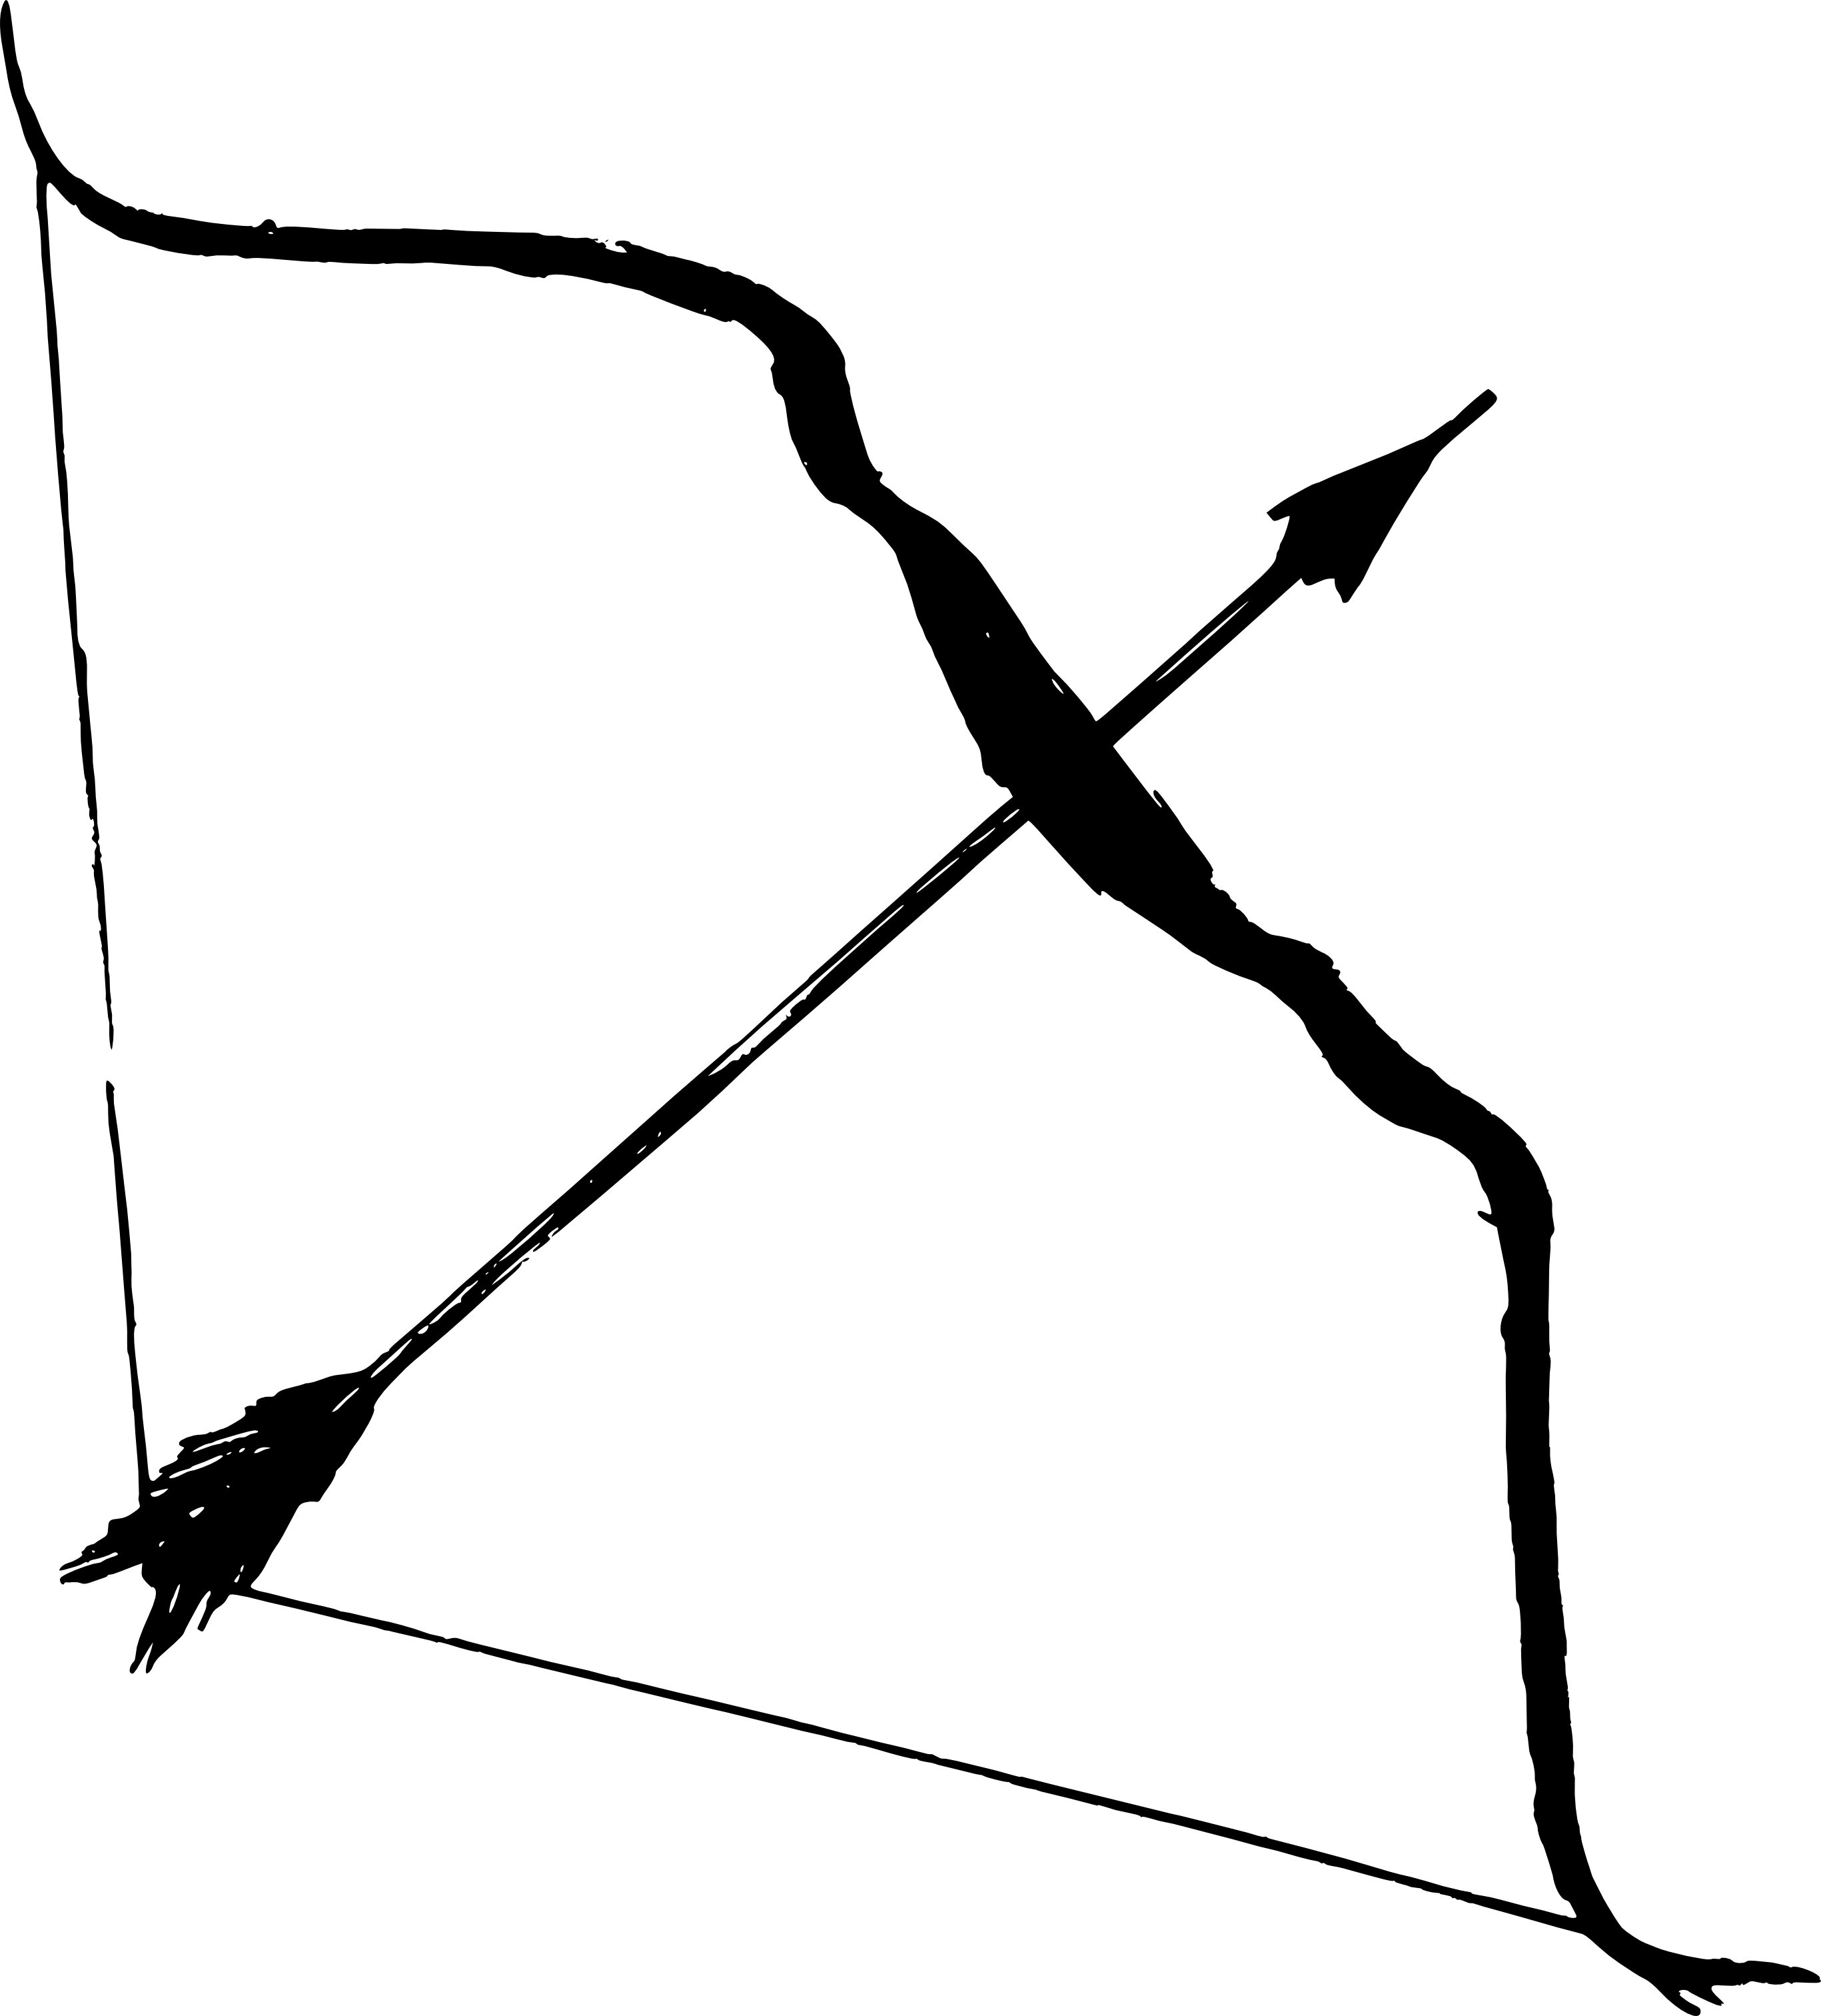 bow arrows png